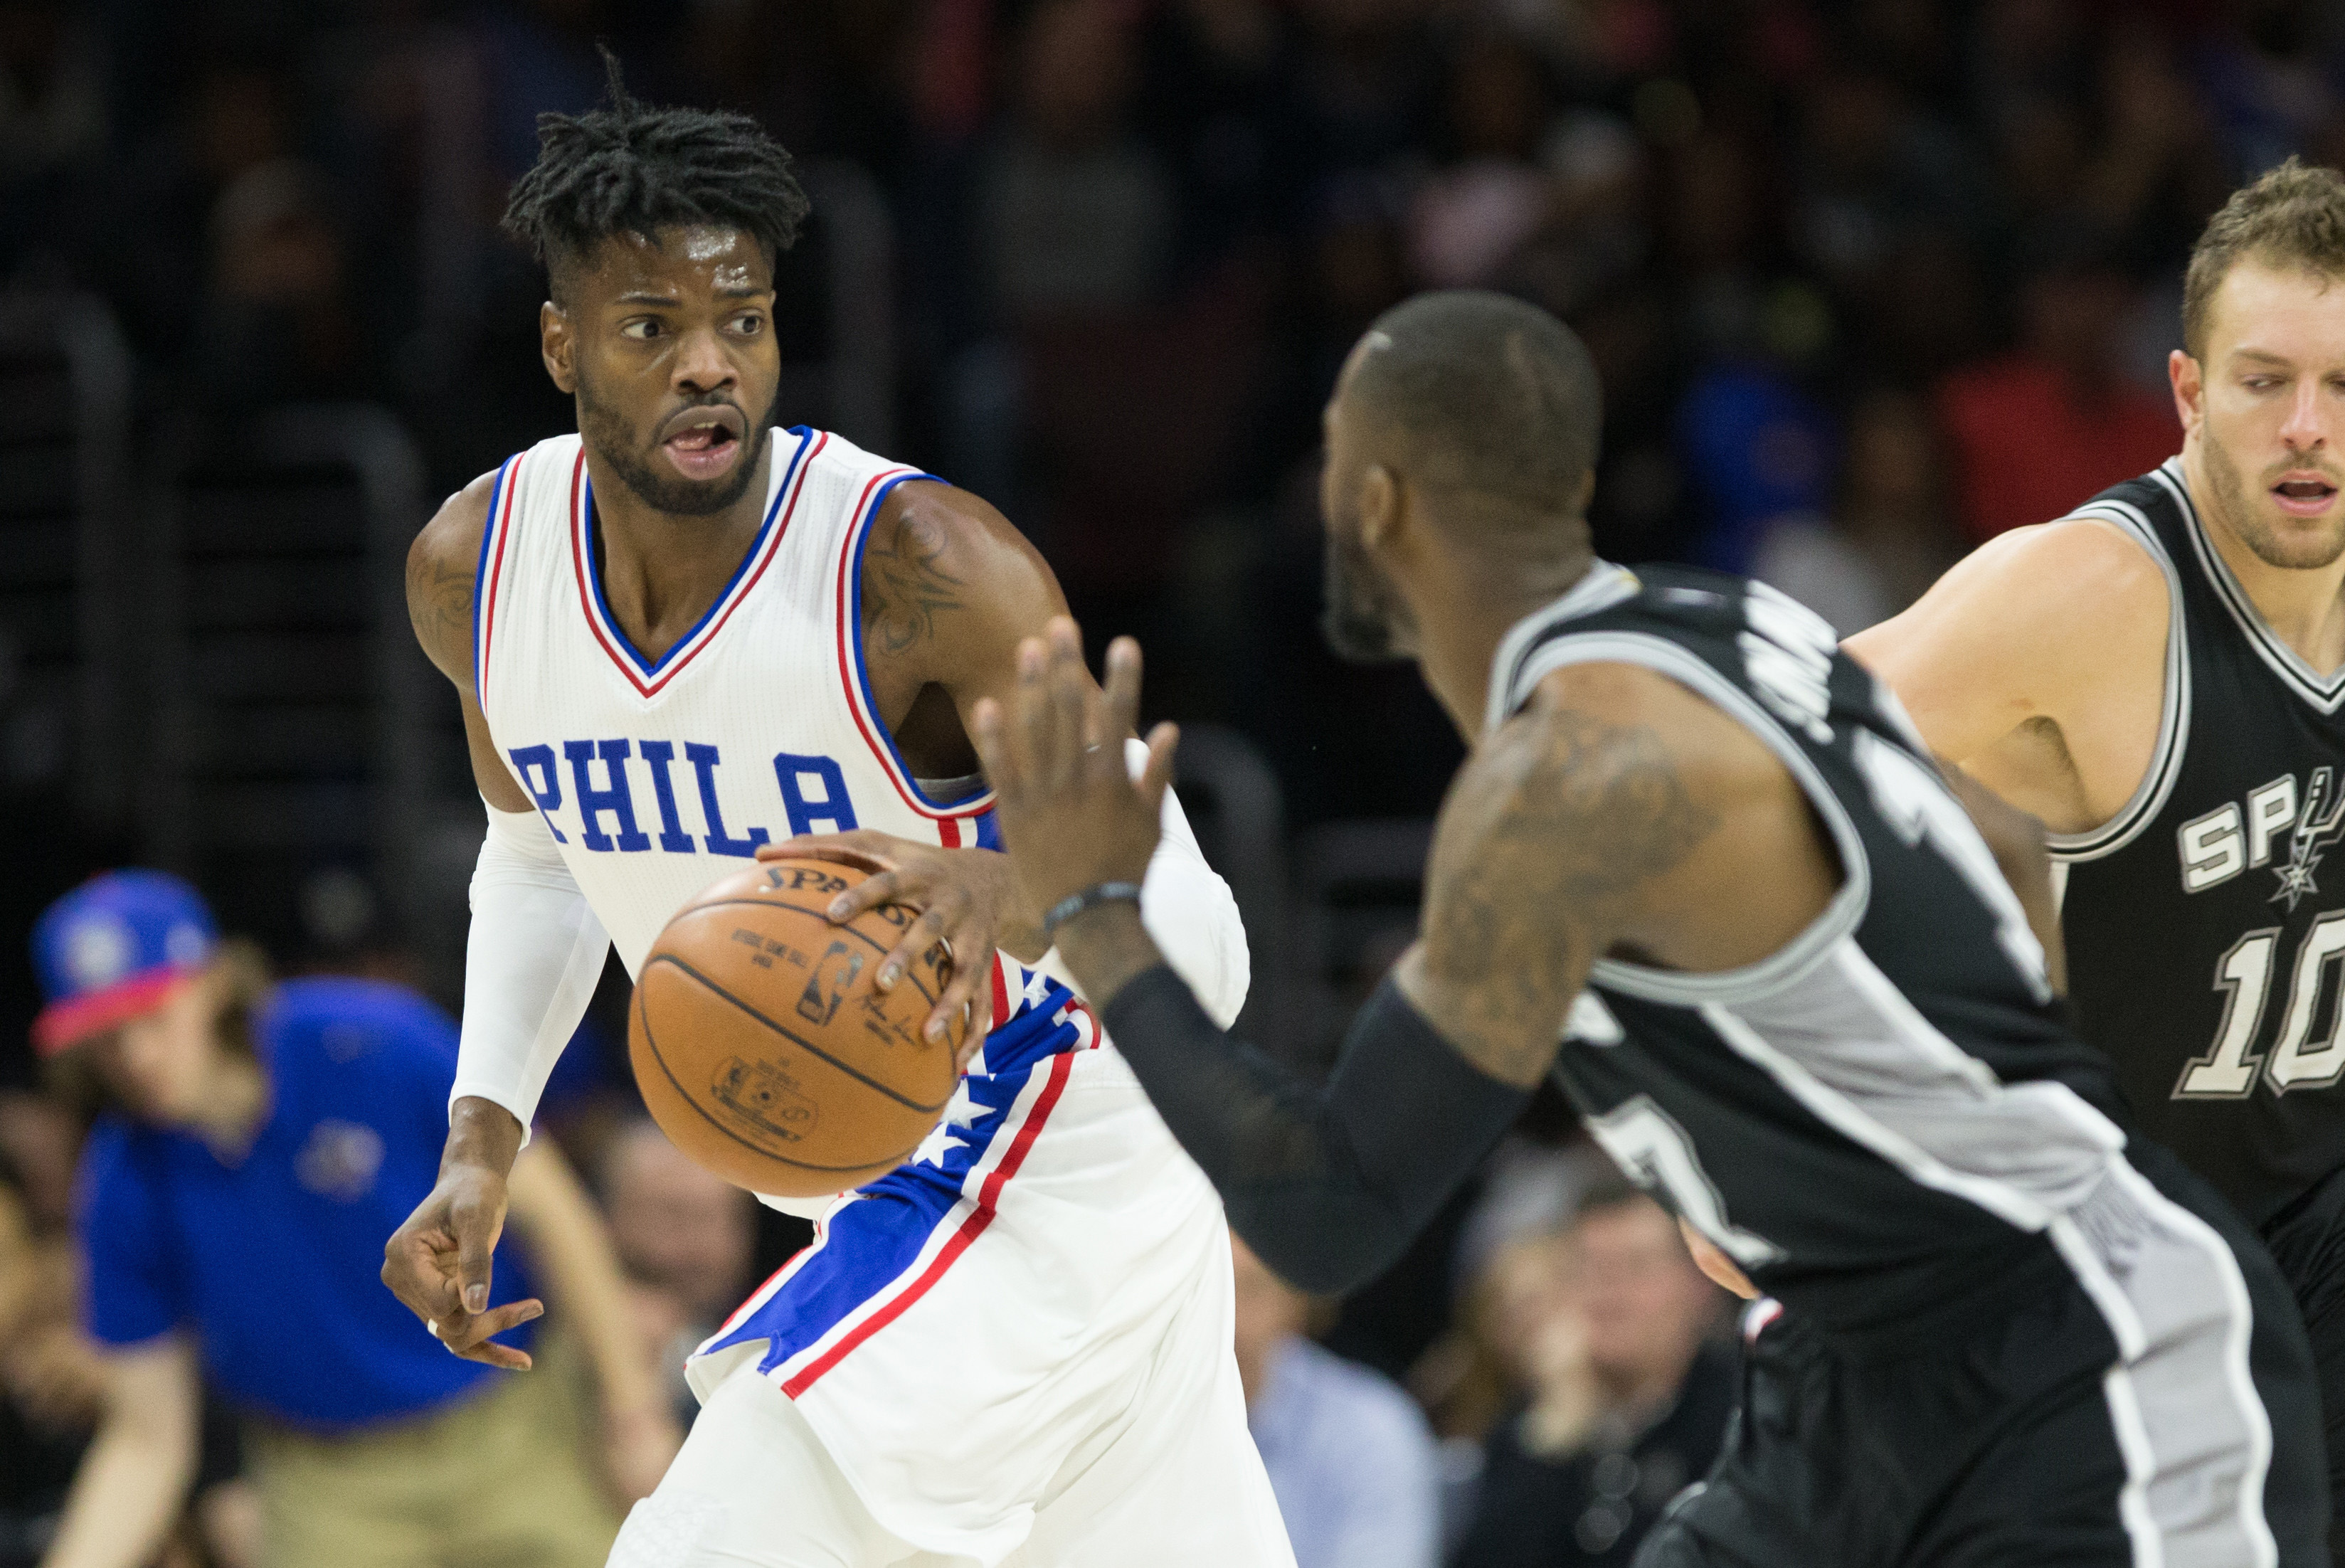 Feb 8, 2017; Philadelphia, PA, USA; Philadelphia 76ers forward Nerlens Noel (4) dribbles past San Antonio Spurs guard Jonathon Simmons (17) during the third quarter at Wells Fargo Center. The San Antonio Spurs won 111-103. Mandatory Credit: Bill Streicher-USA TODAY Sports